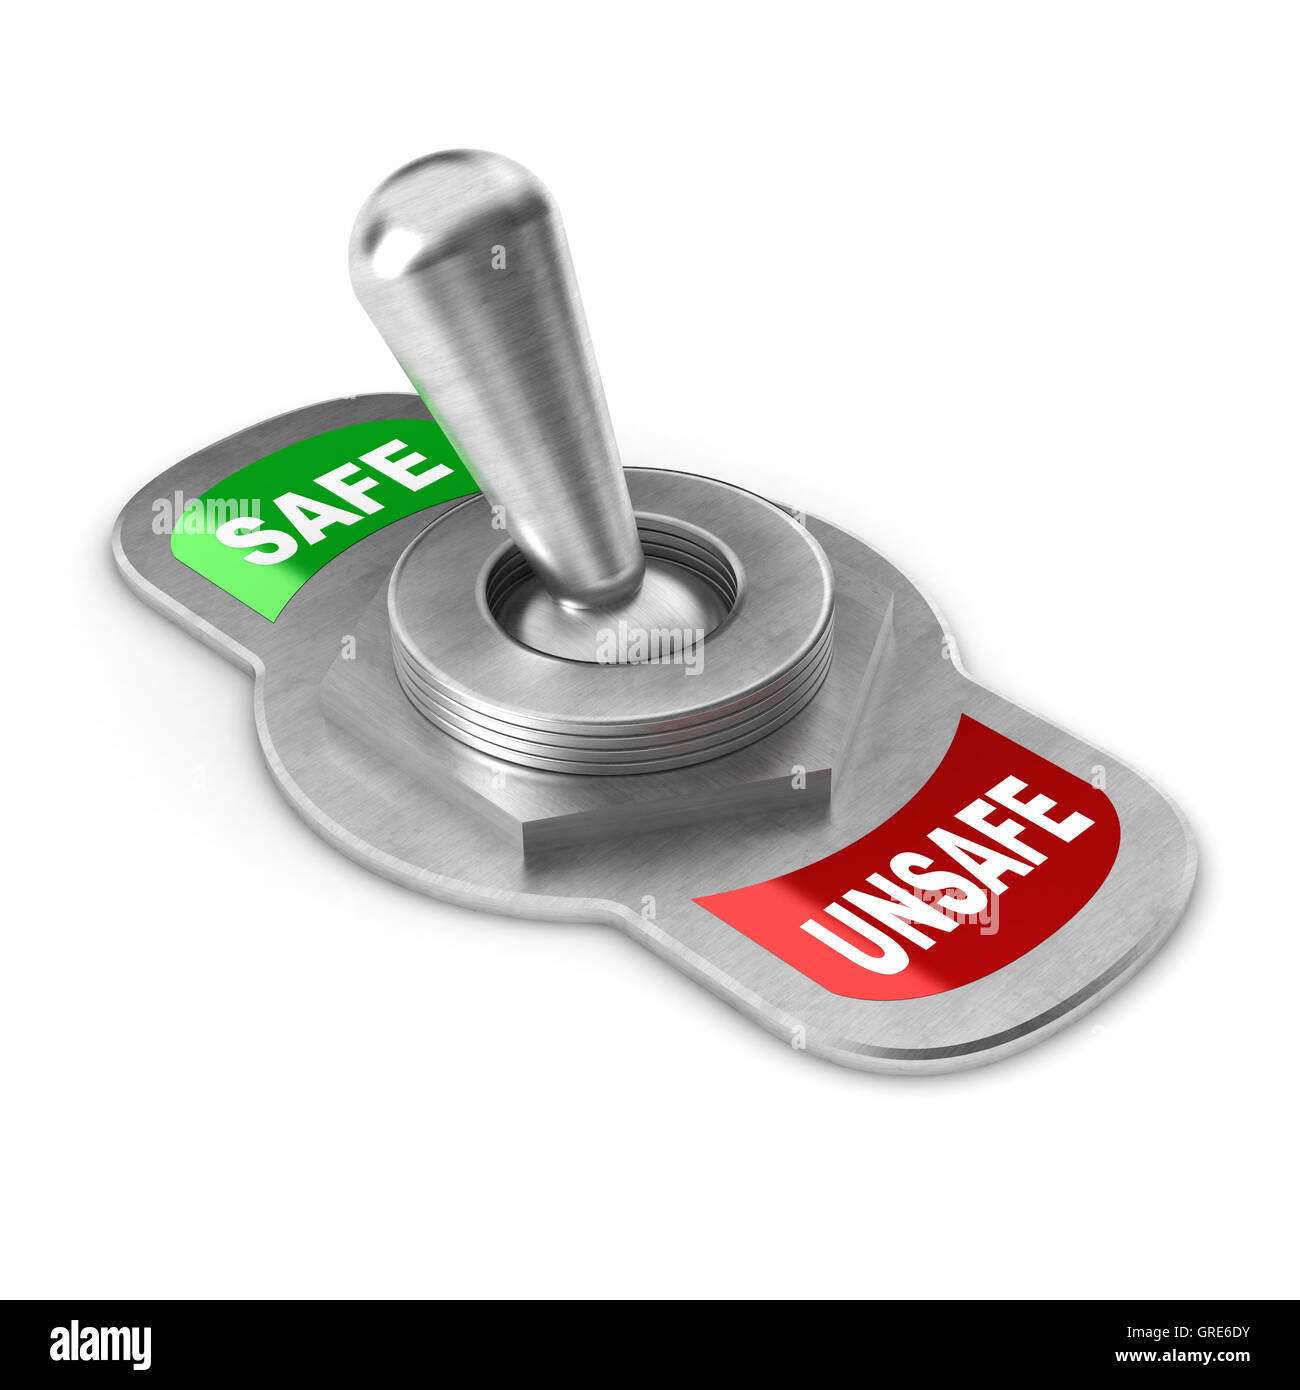 Safe vs Unsafe Switch - Stock Image